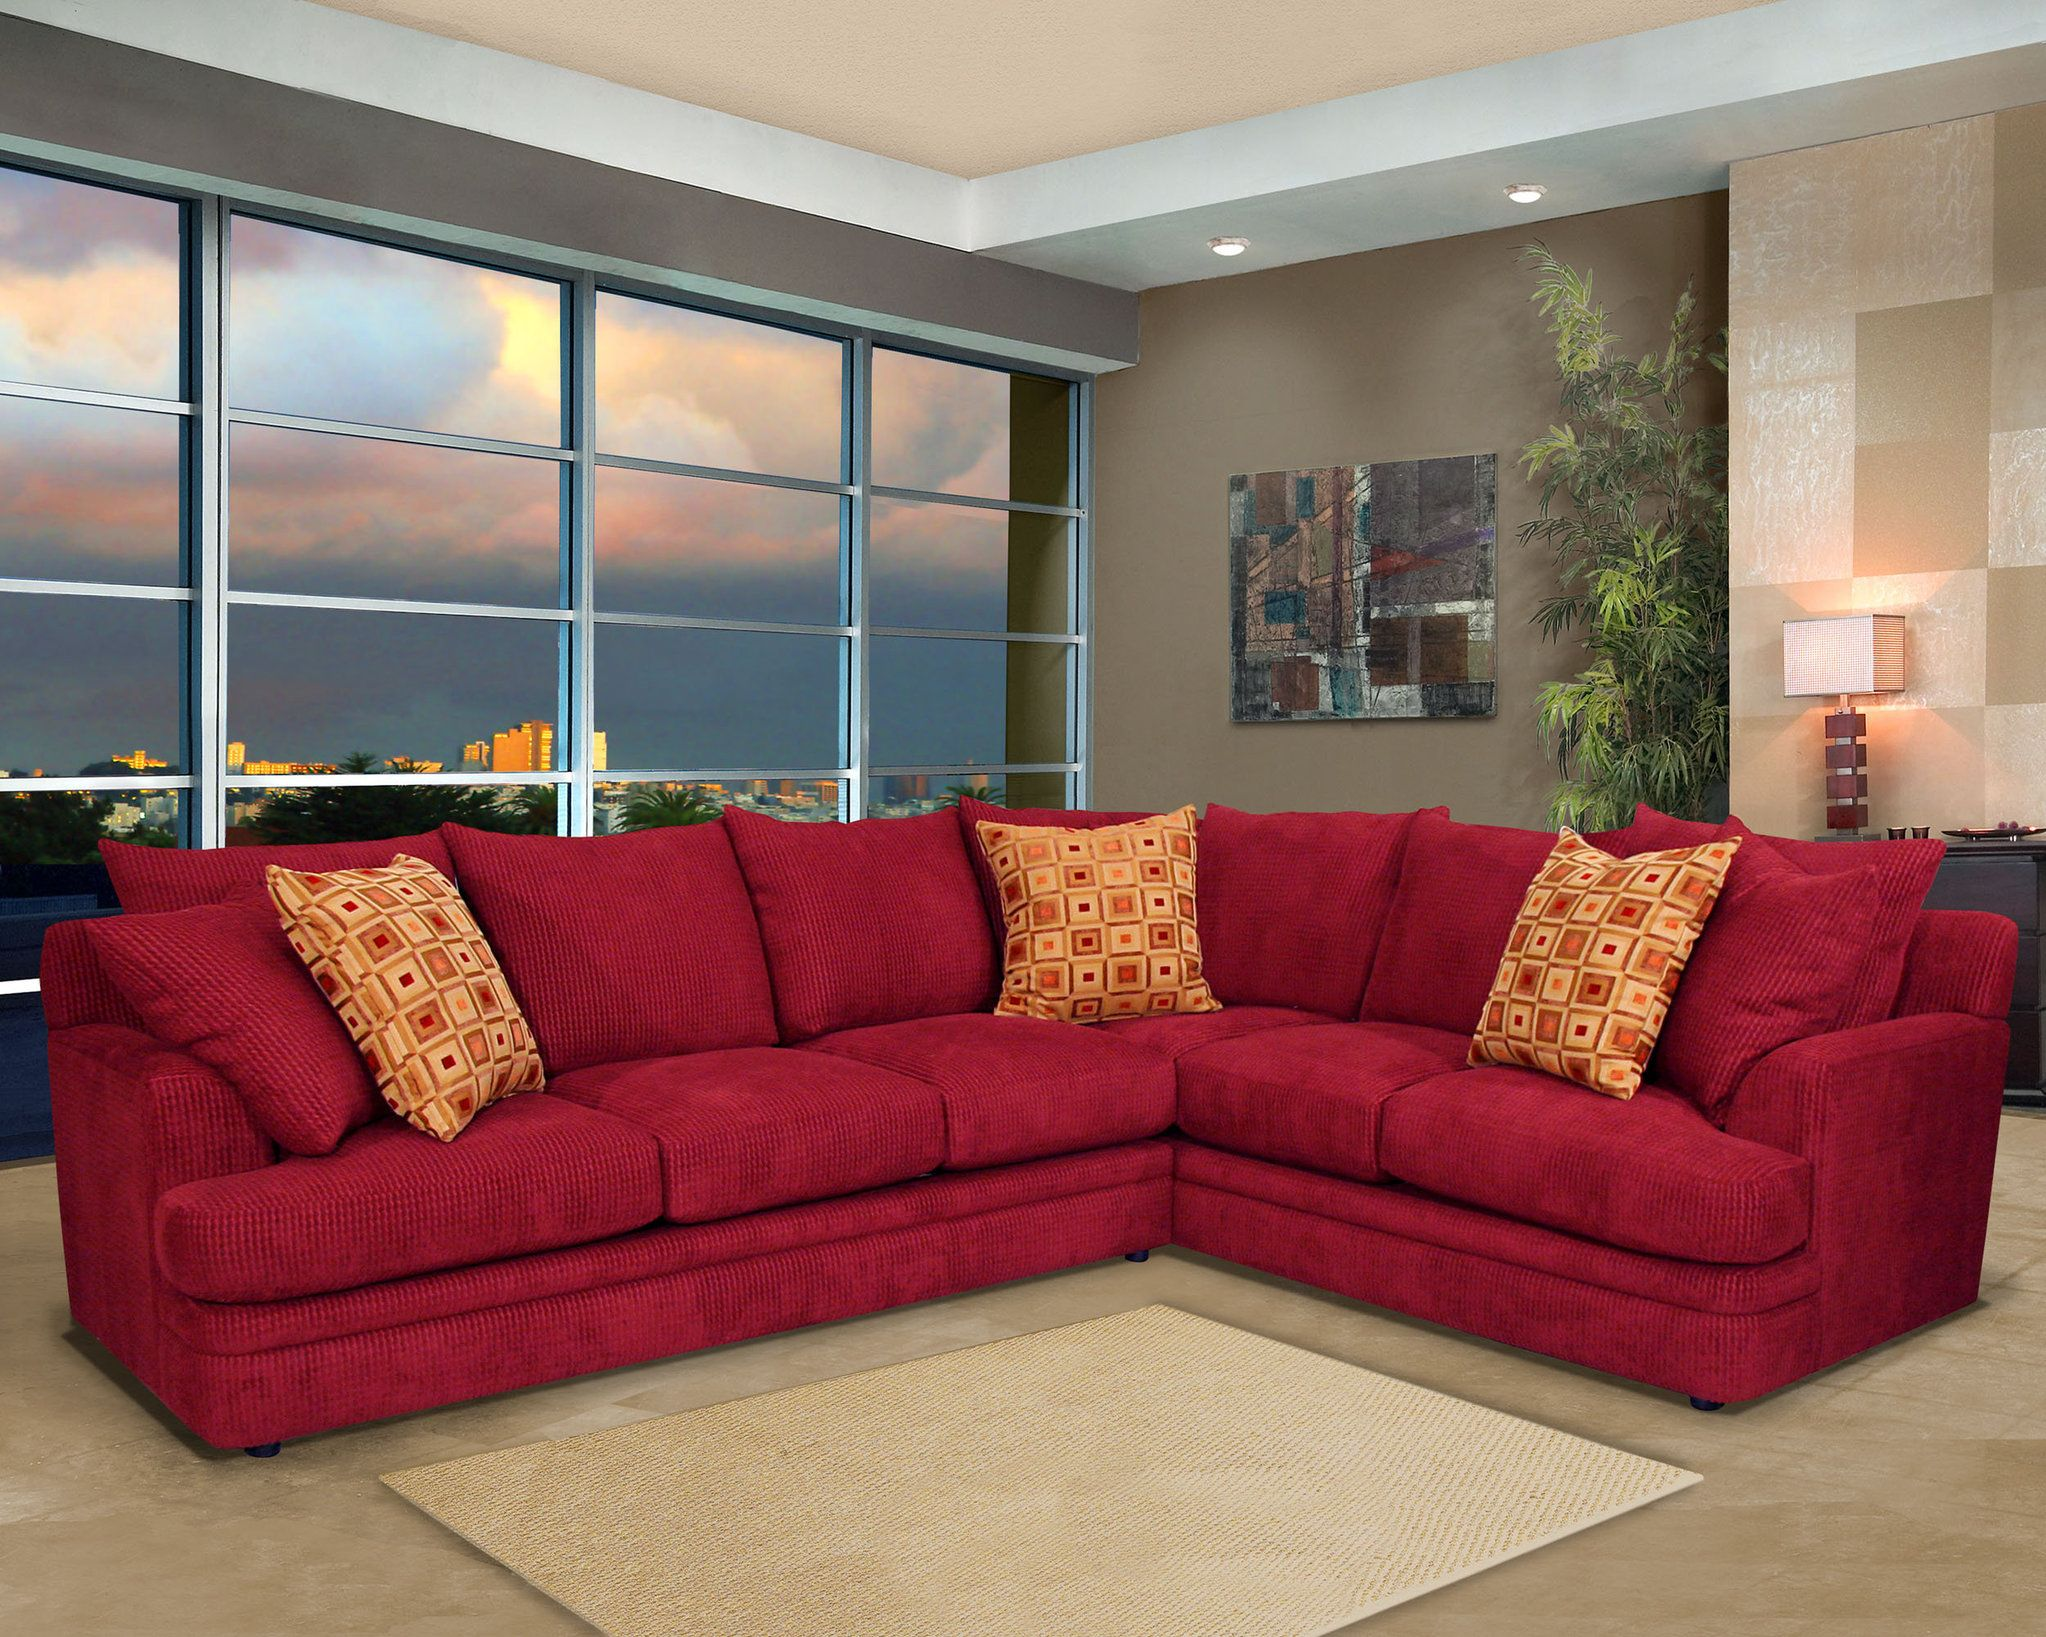 red corduroy couch with sleeper | furniture livingroom